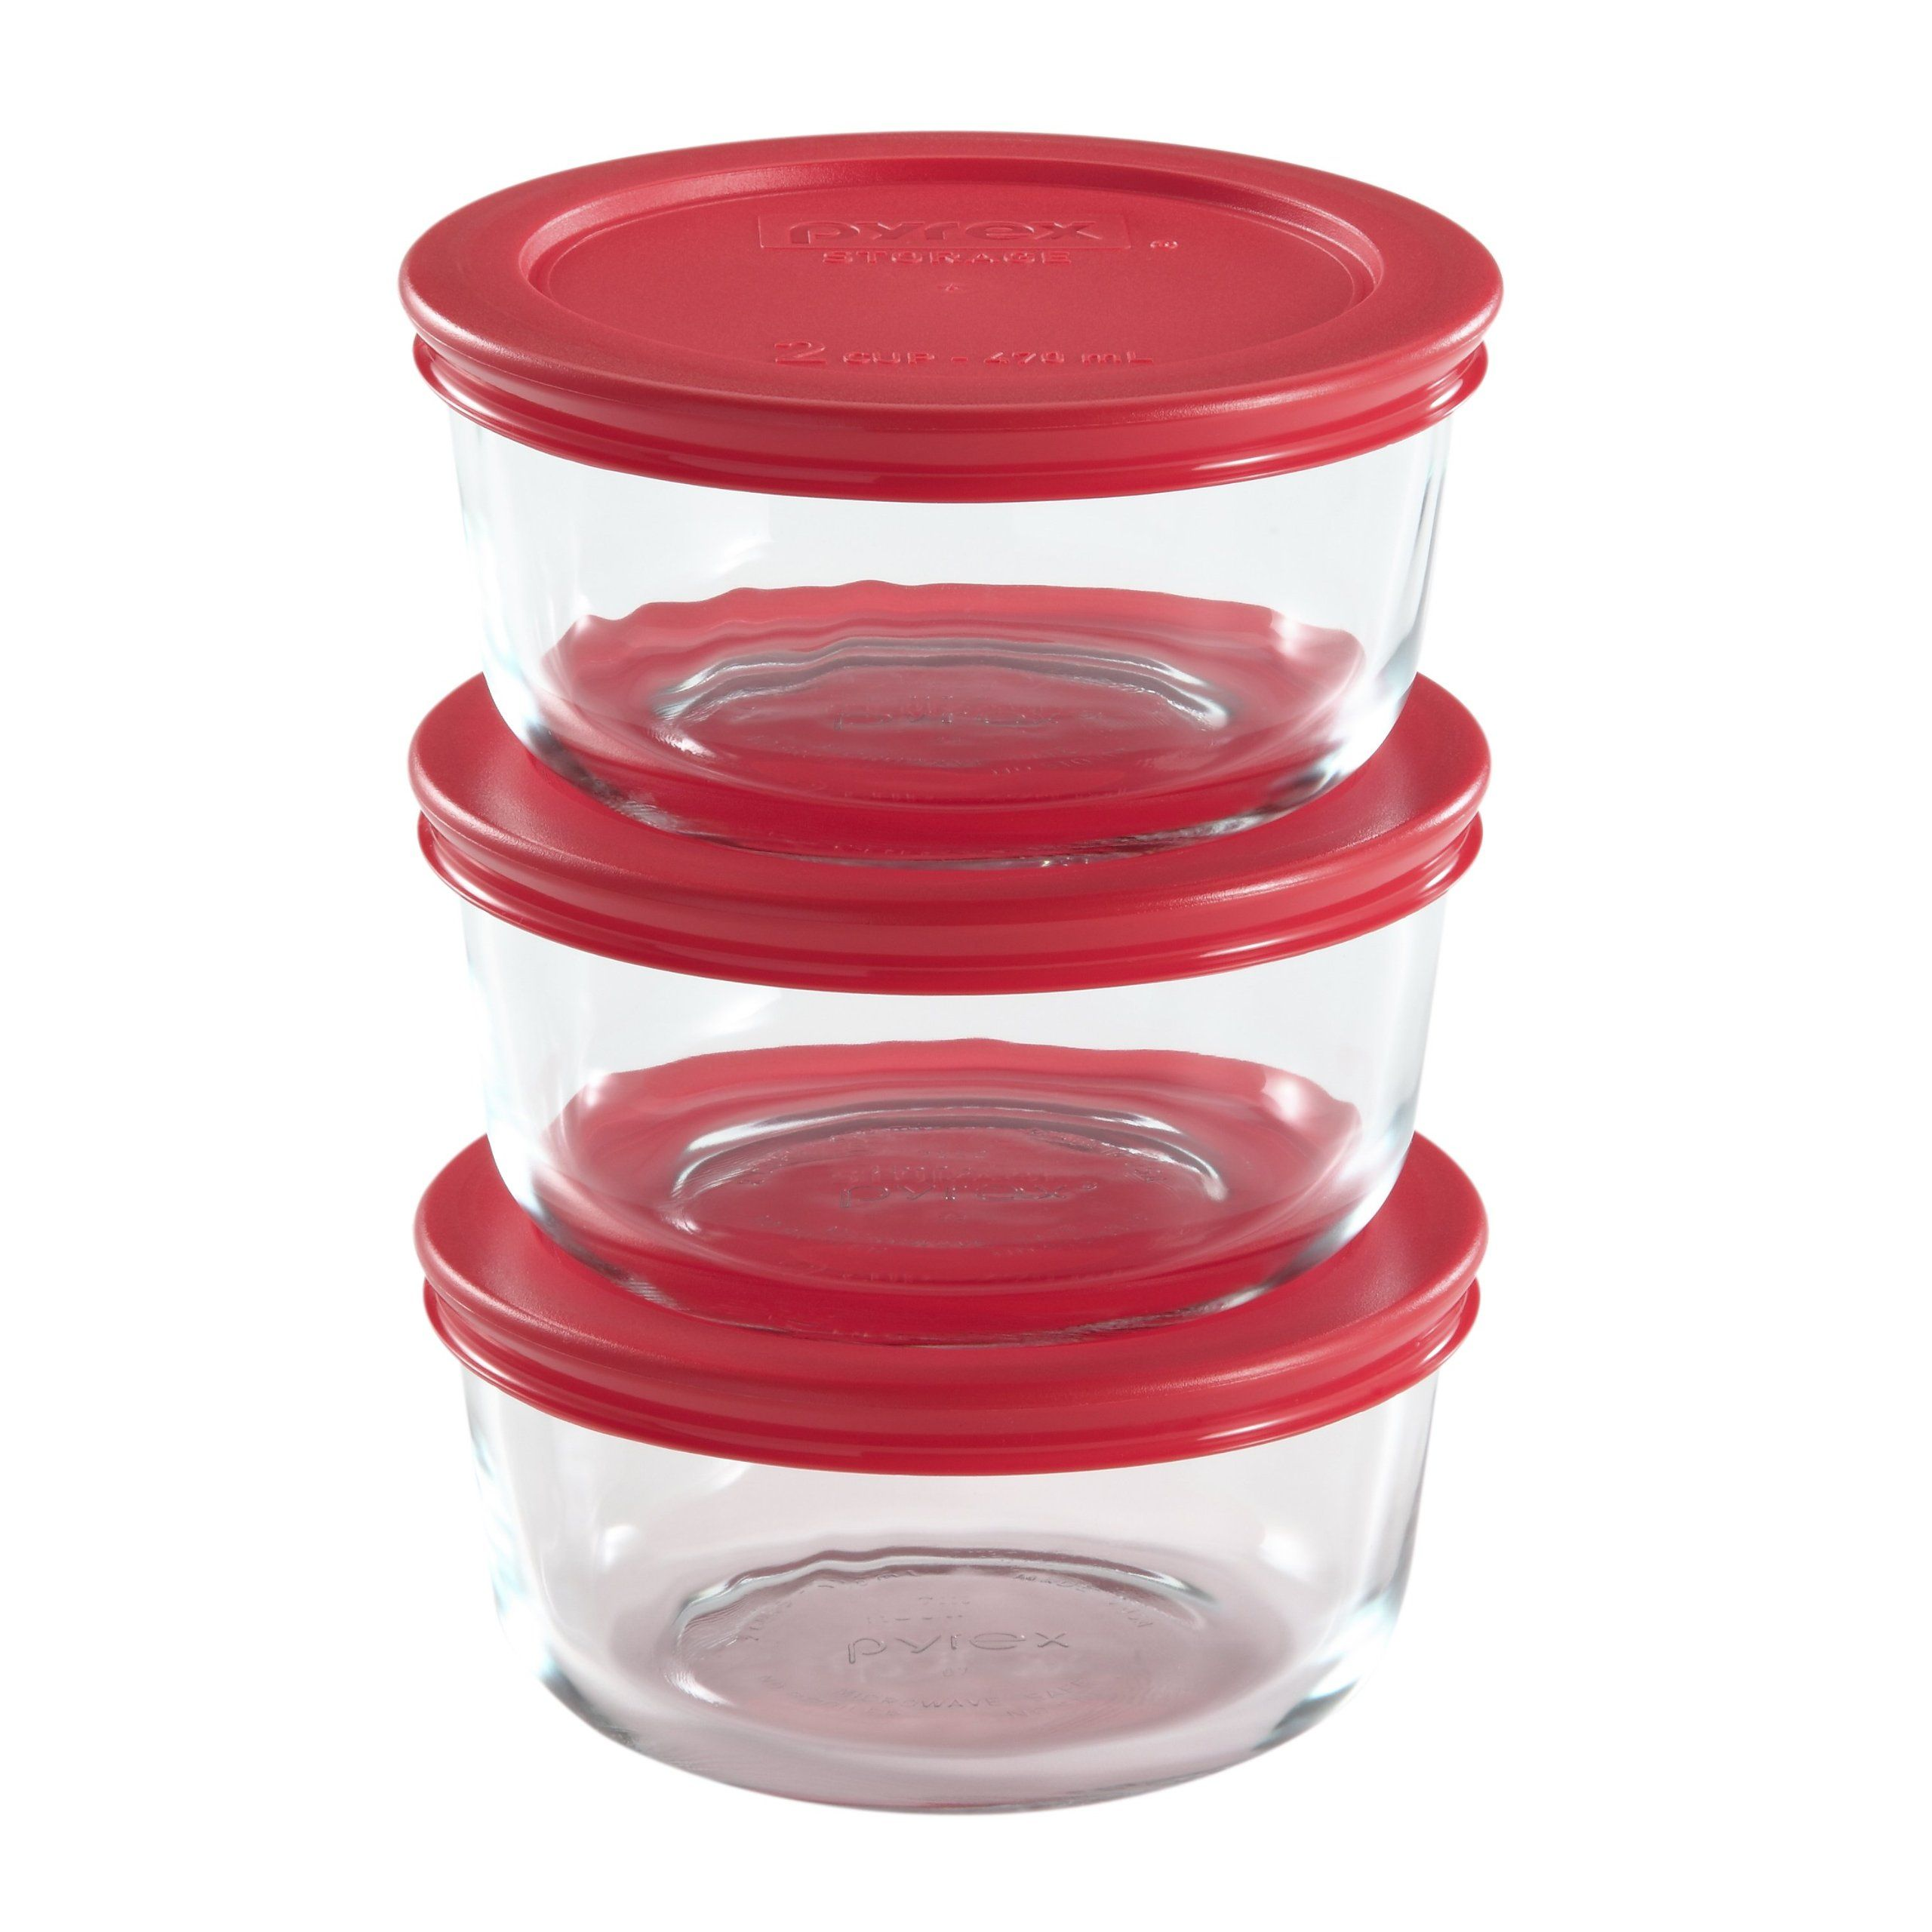 Pyrex 6 Piece Glass Food Storage Set With Lids Glass Food Storage Containers Glass Food Storage Pyrex Storage